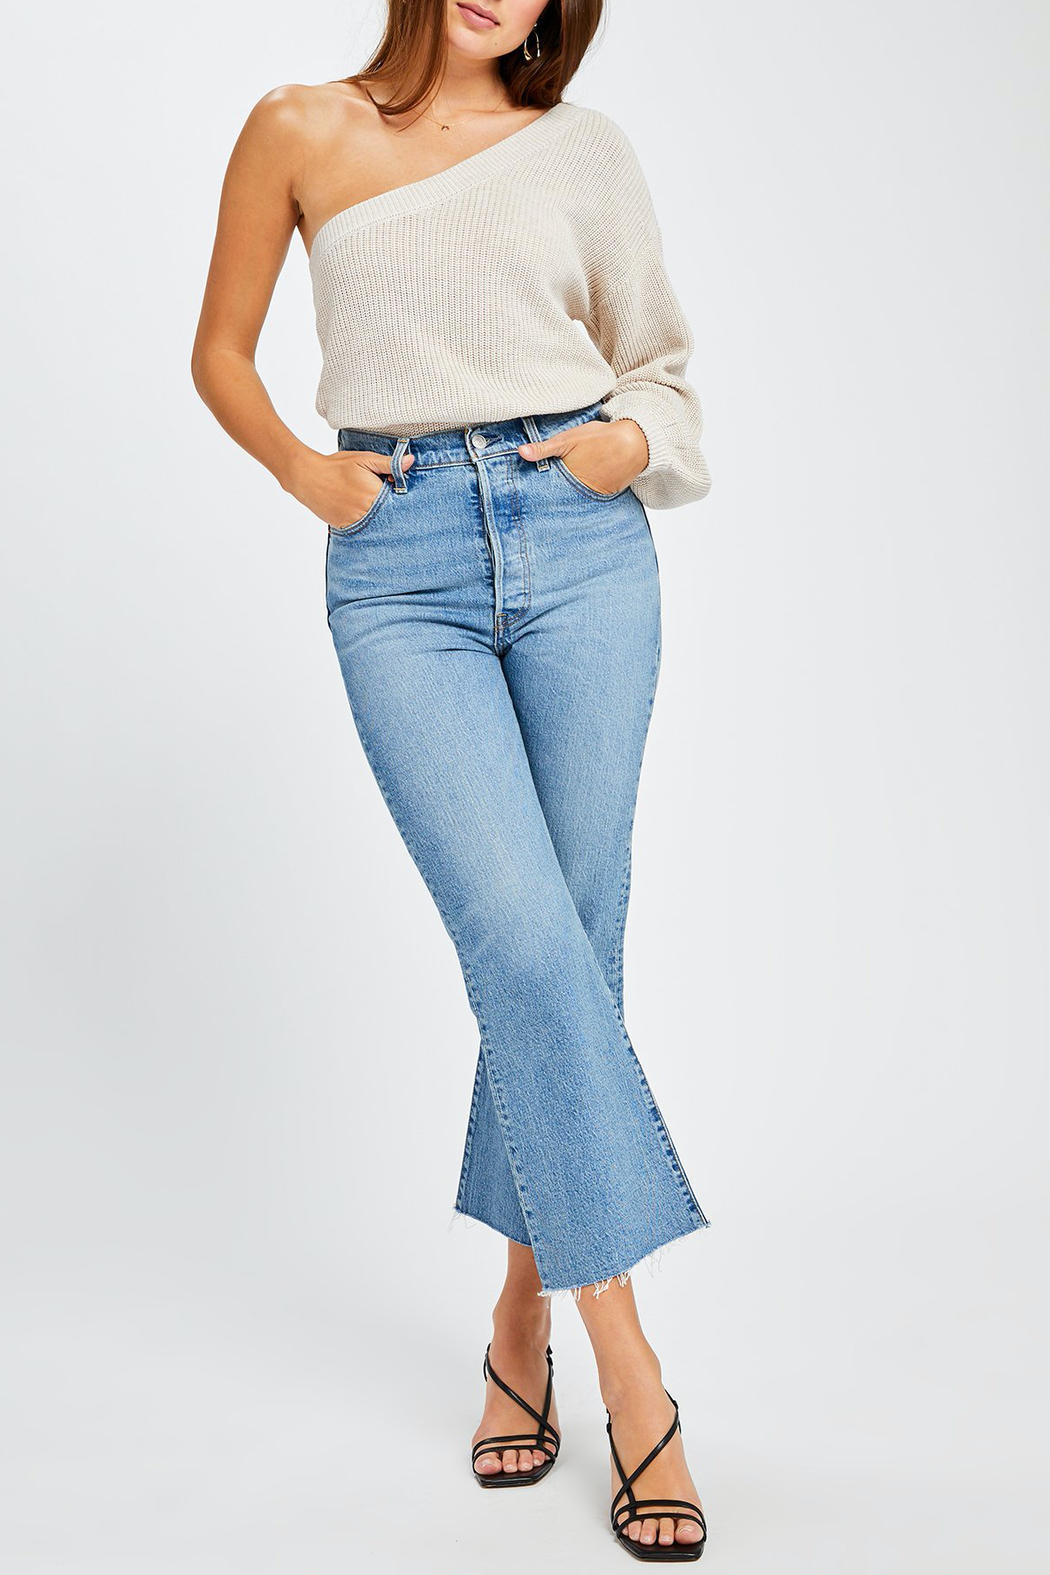 Gentle Fawn Tundra One Shoulder Sweater - Back Cropped Image